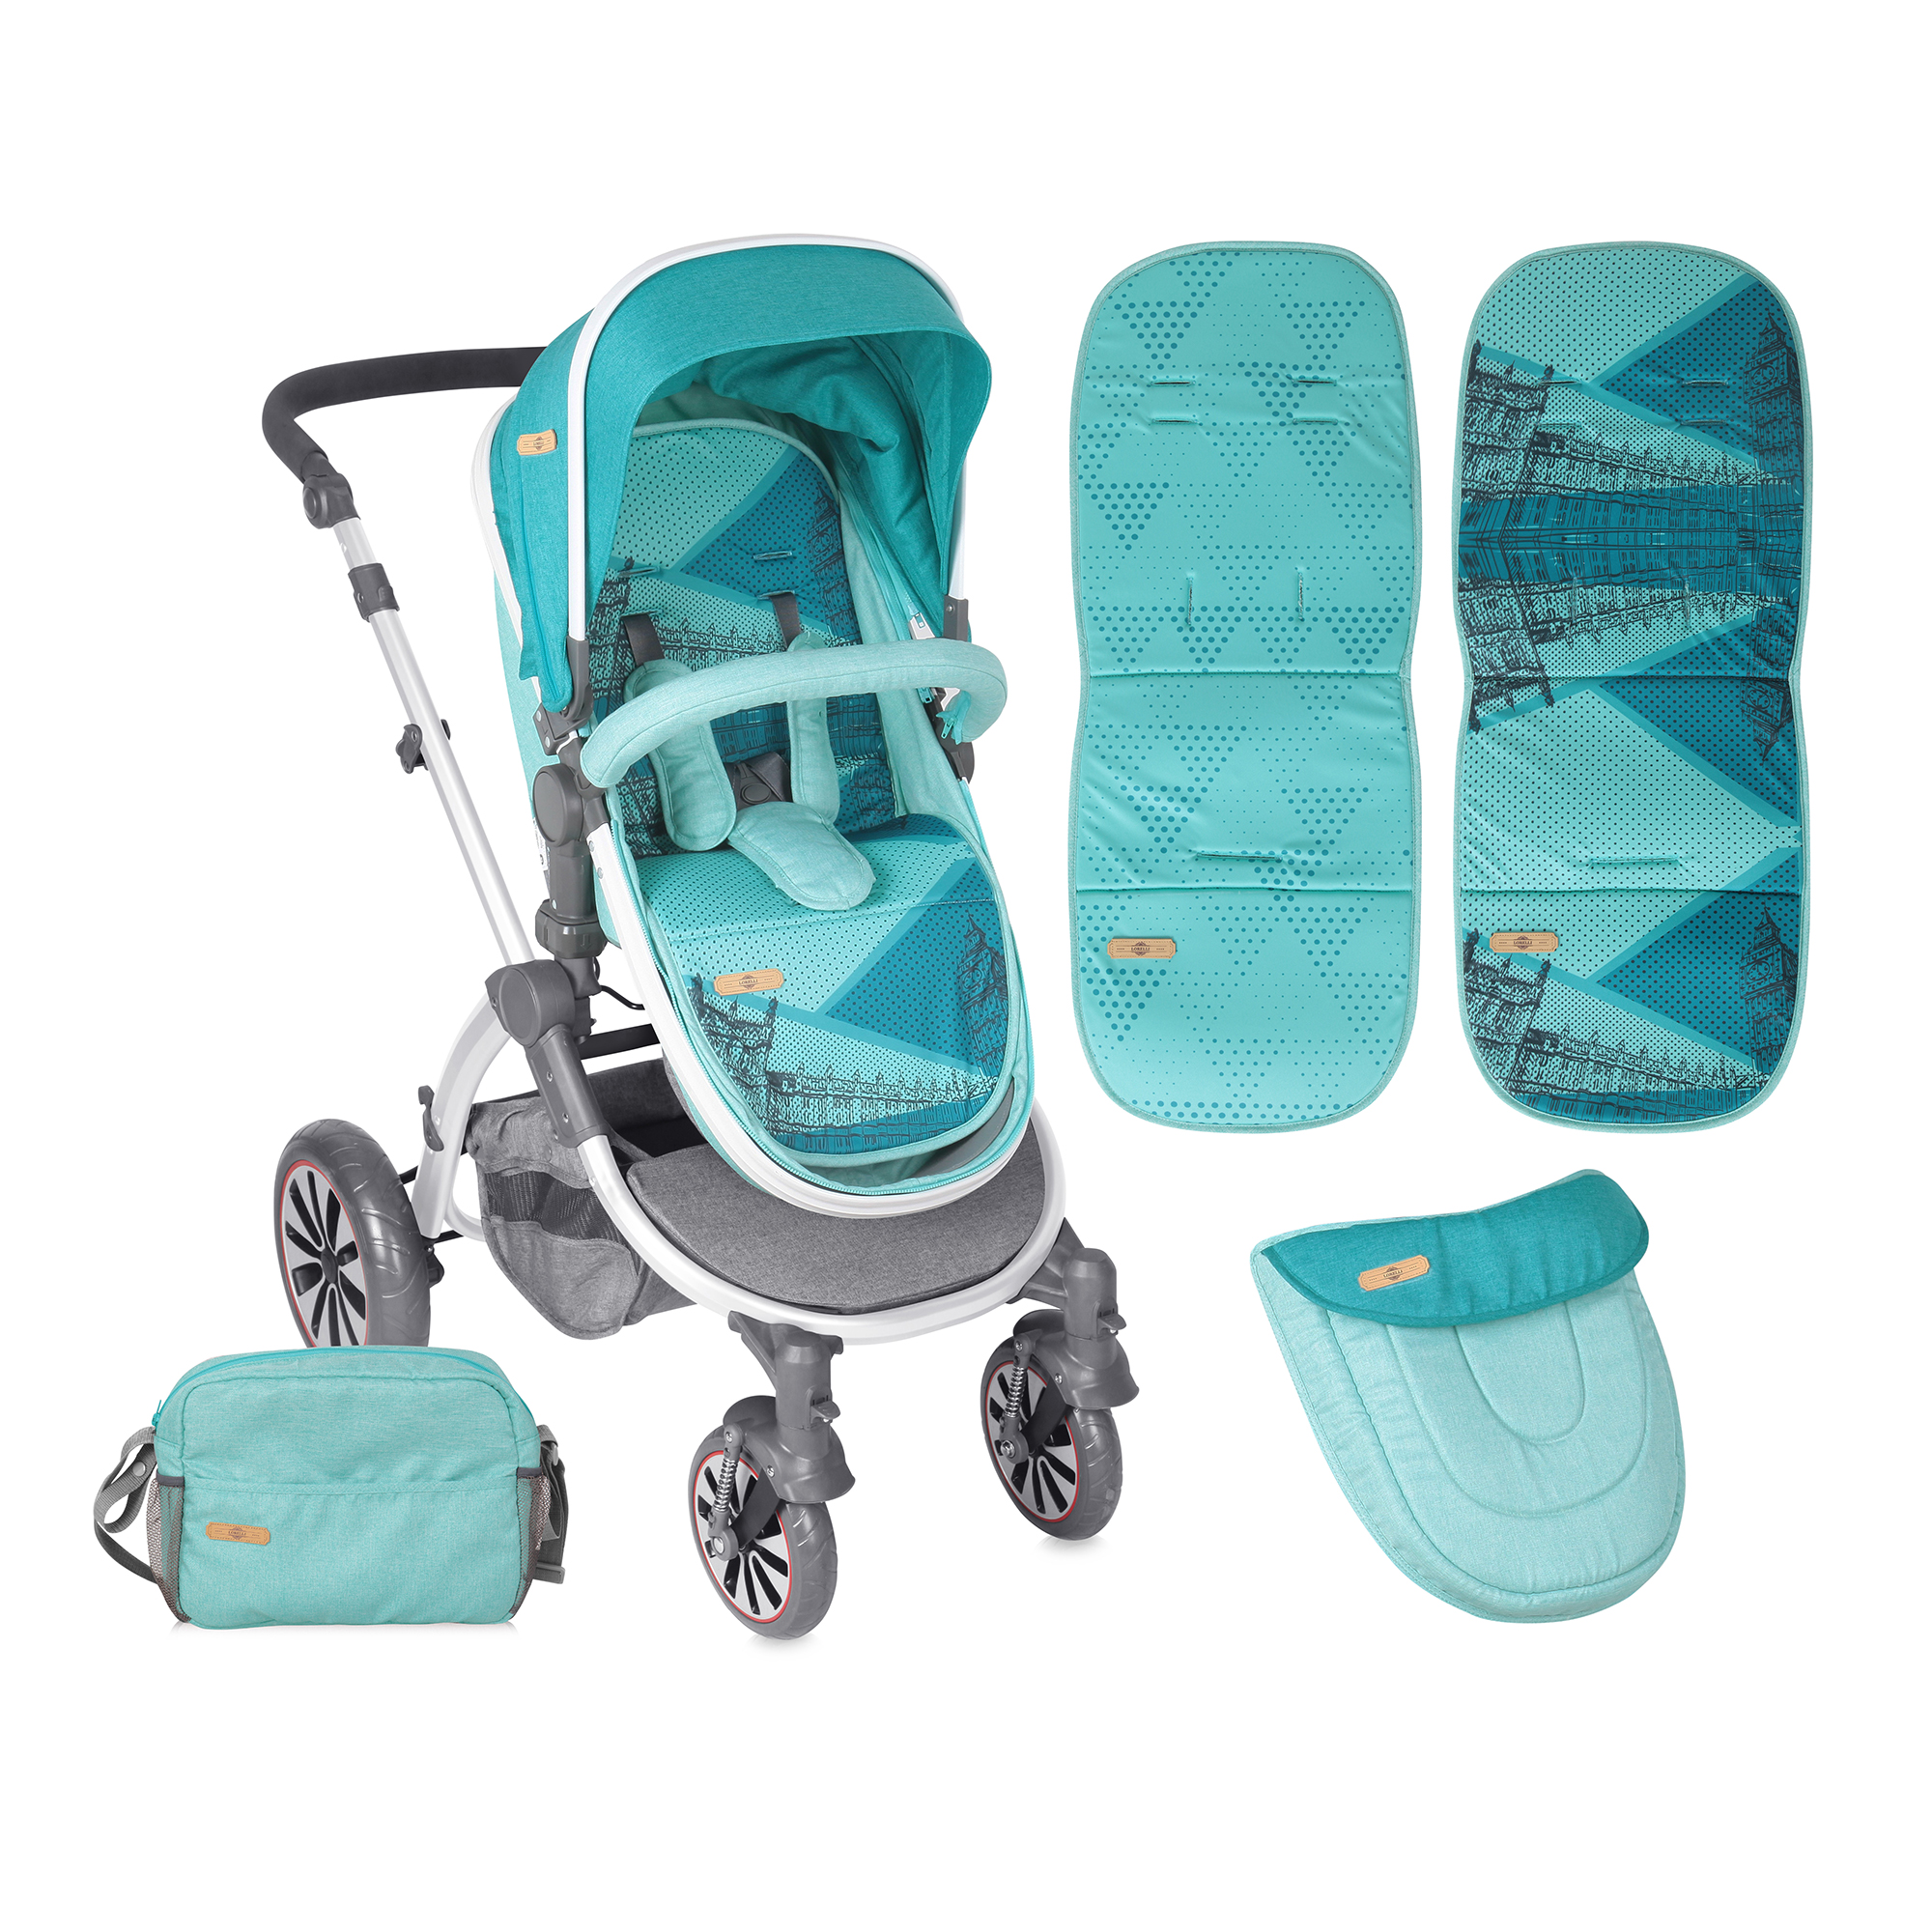 carucior copii 2 in 1 lorelli premium aurora london - aquamarine